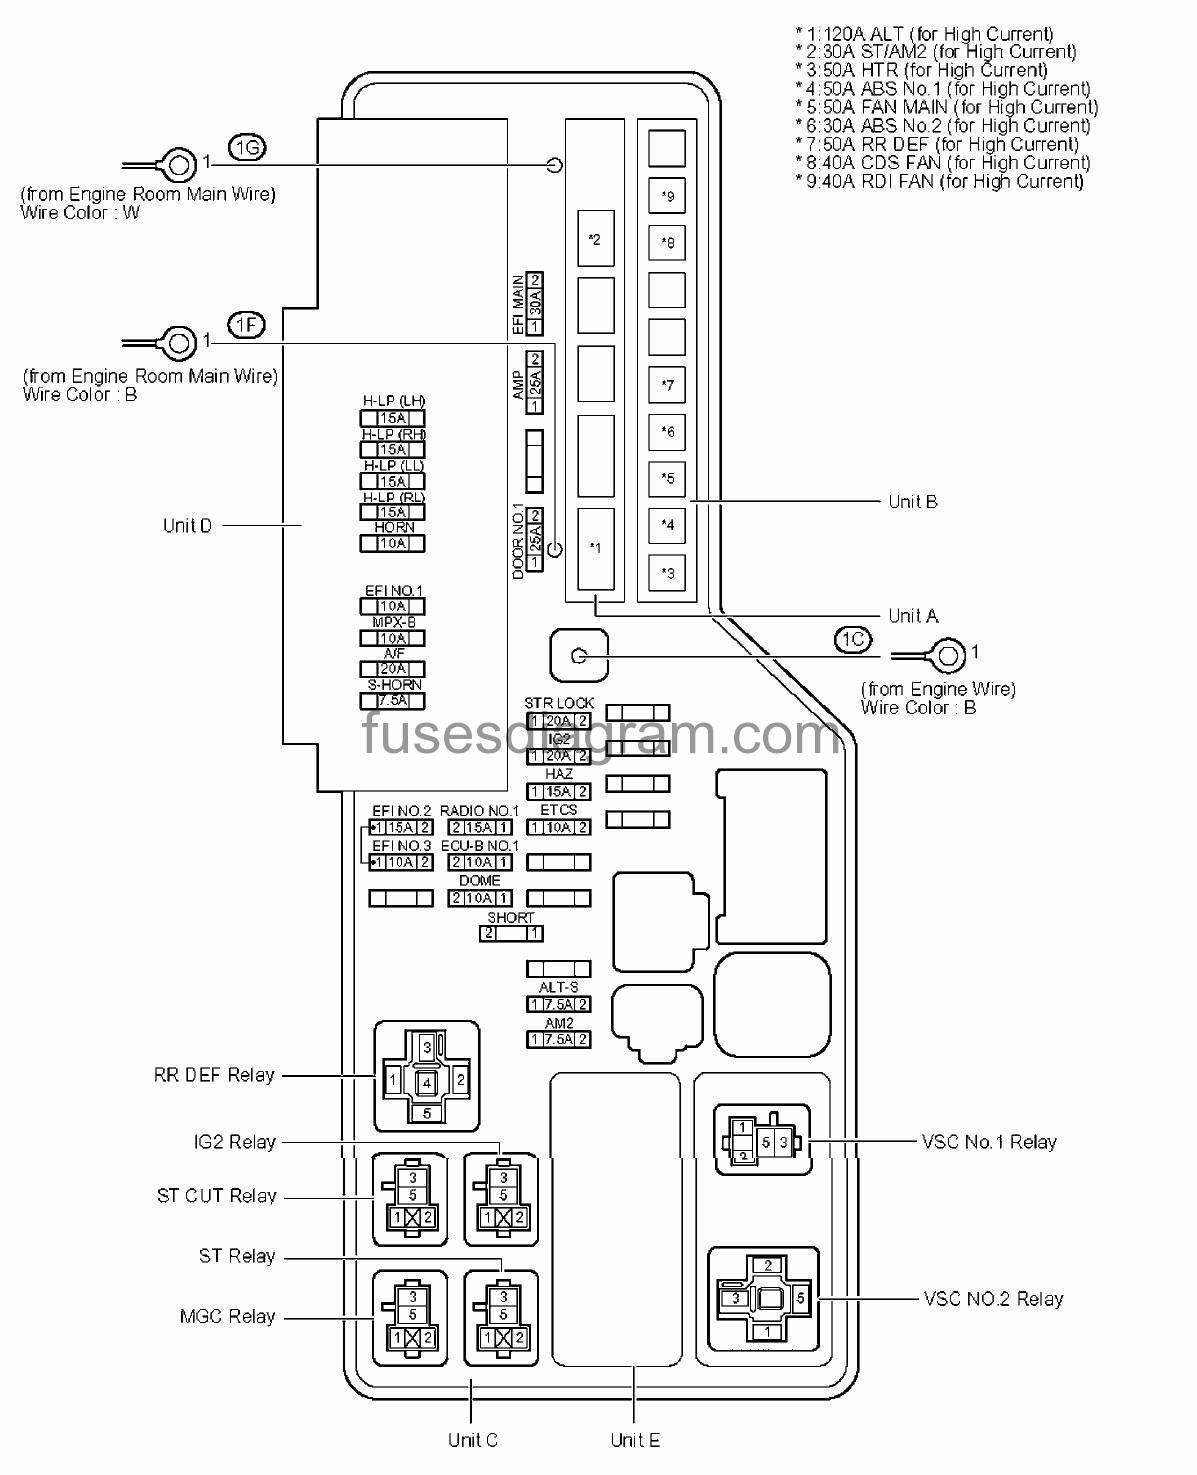 hight resolution of 1989 camry fuse diagram wiring diagram used 1988 toyota camry fuse box diagram image details